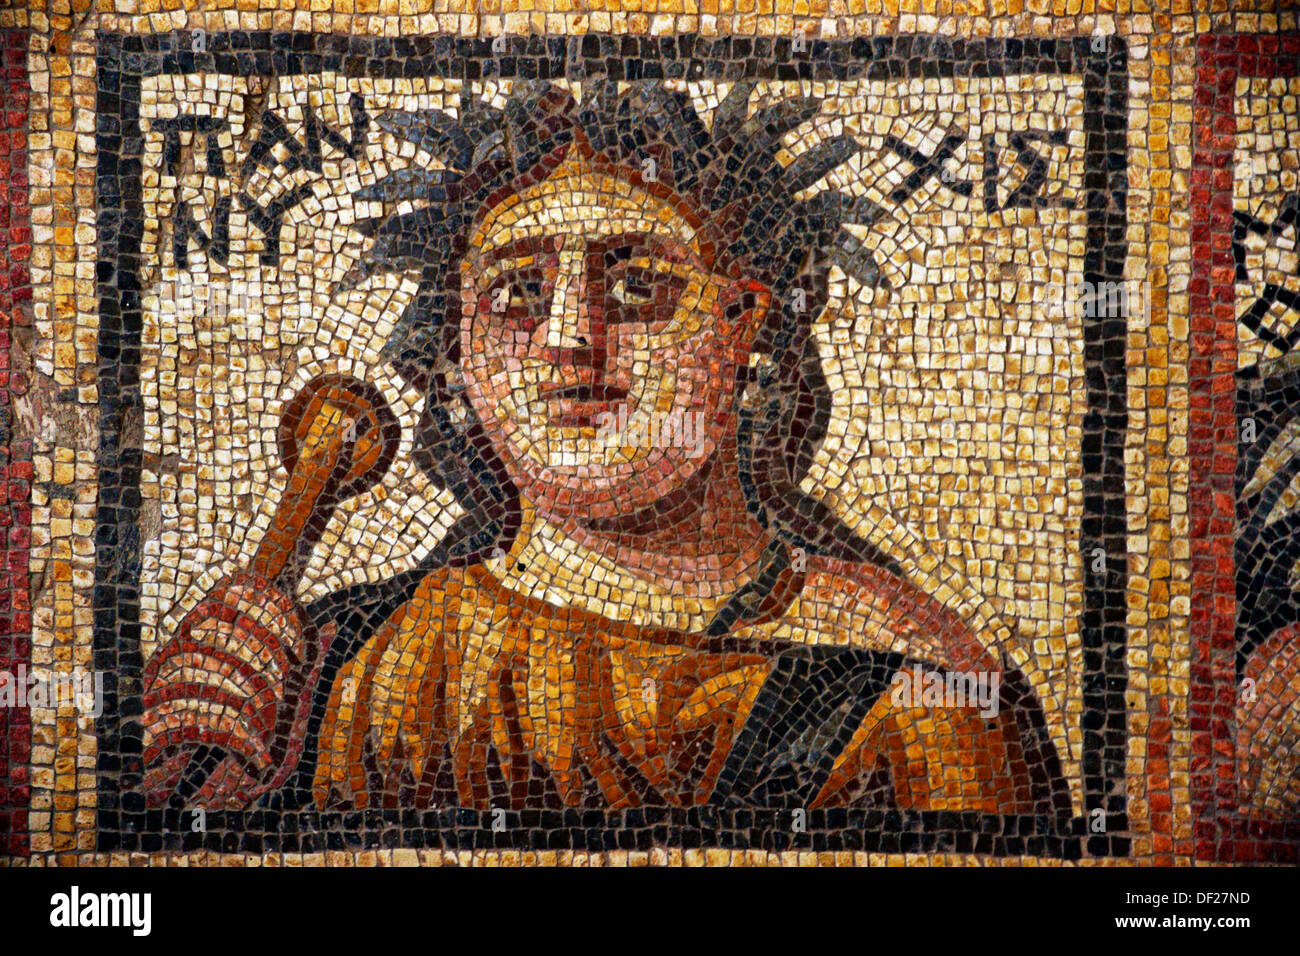 Syria, Hauran, Museum of Shahba: detail of the mosaic of the Four Seasons, 3rd Century - Stock Image